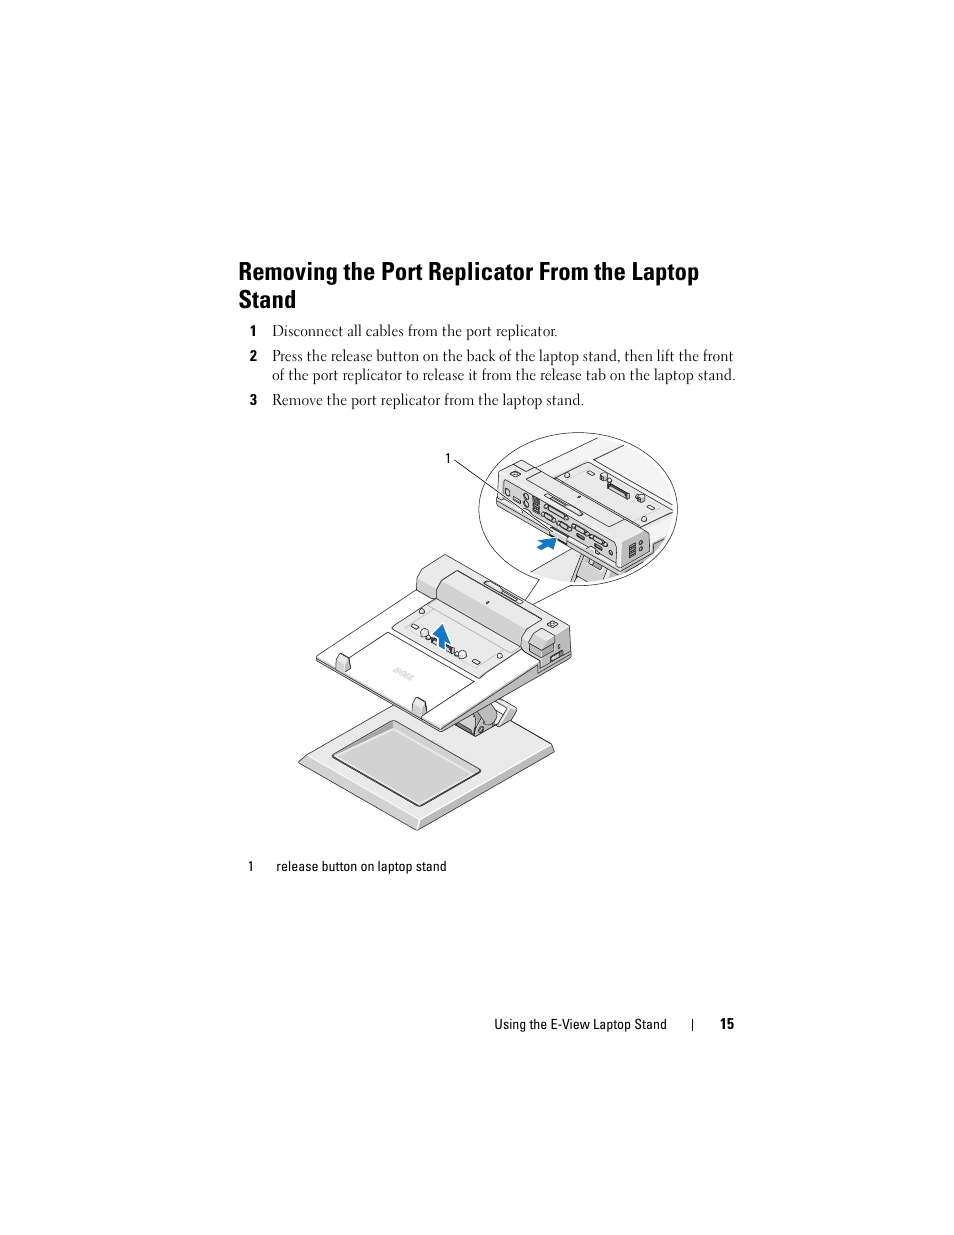 medium resolution of removing the port replicator from the laptop stand dell e view laptop stand user manual page 15 20